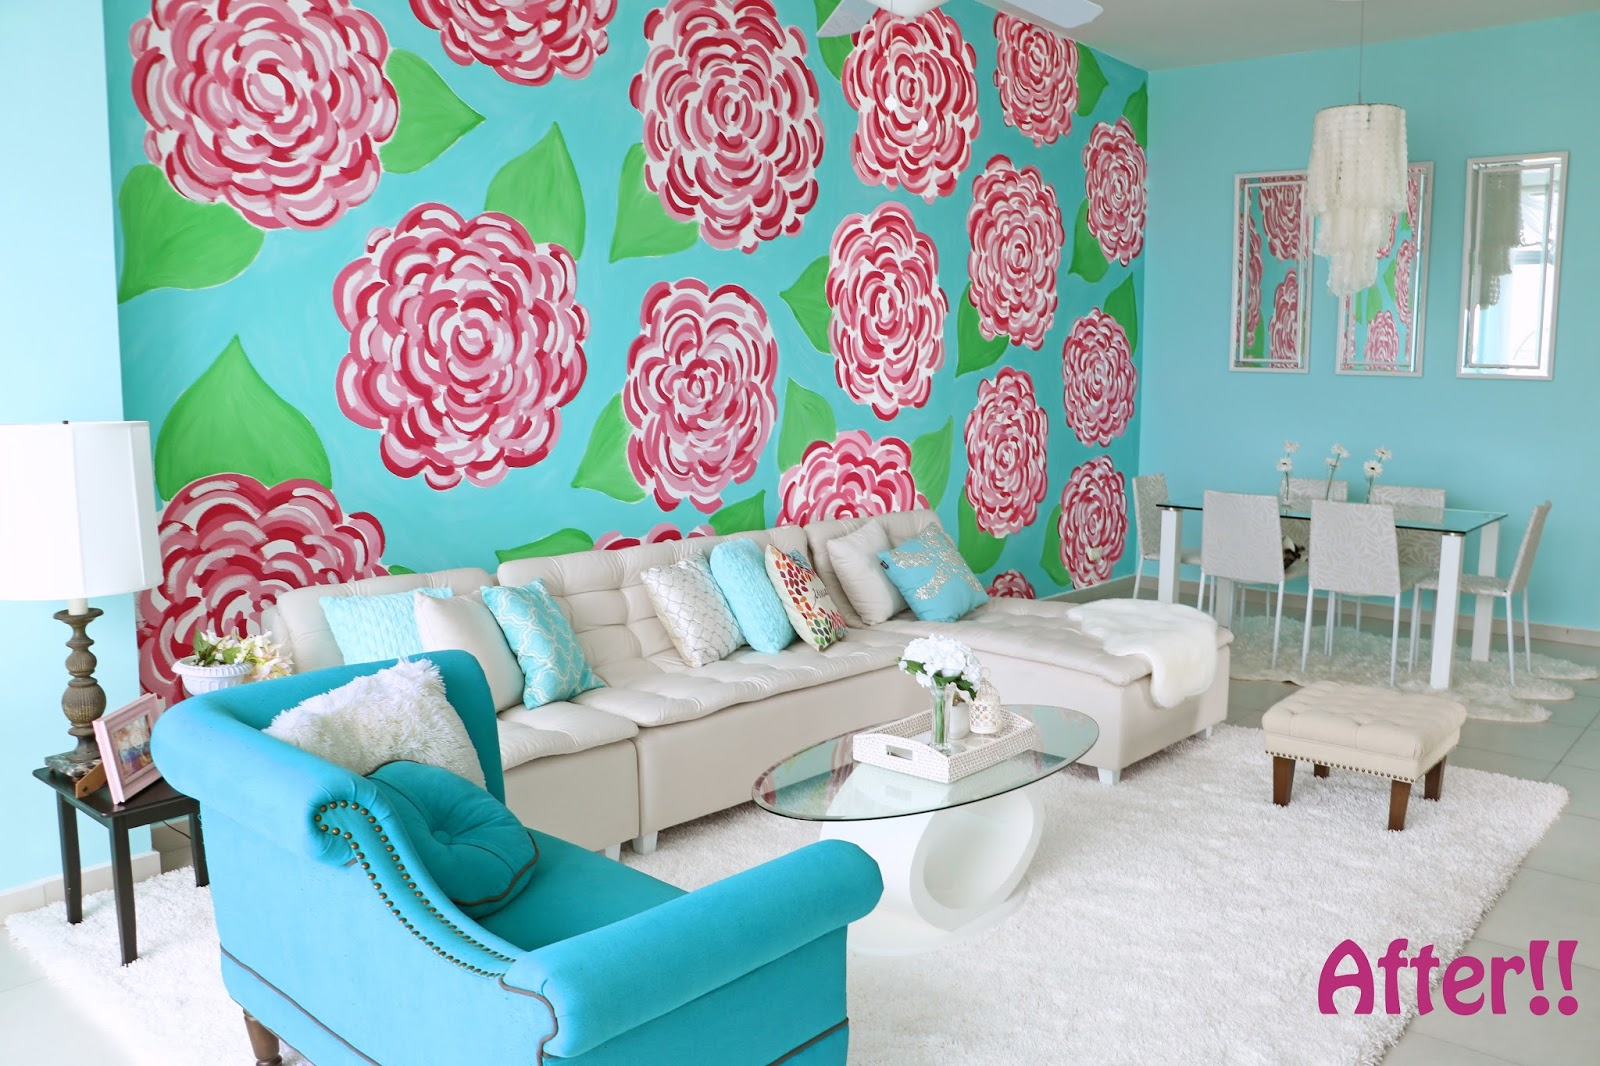 Click through to see the full apartment makeover to a colorful wonderland!